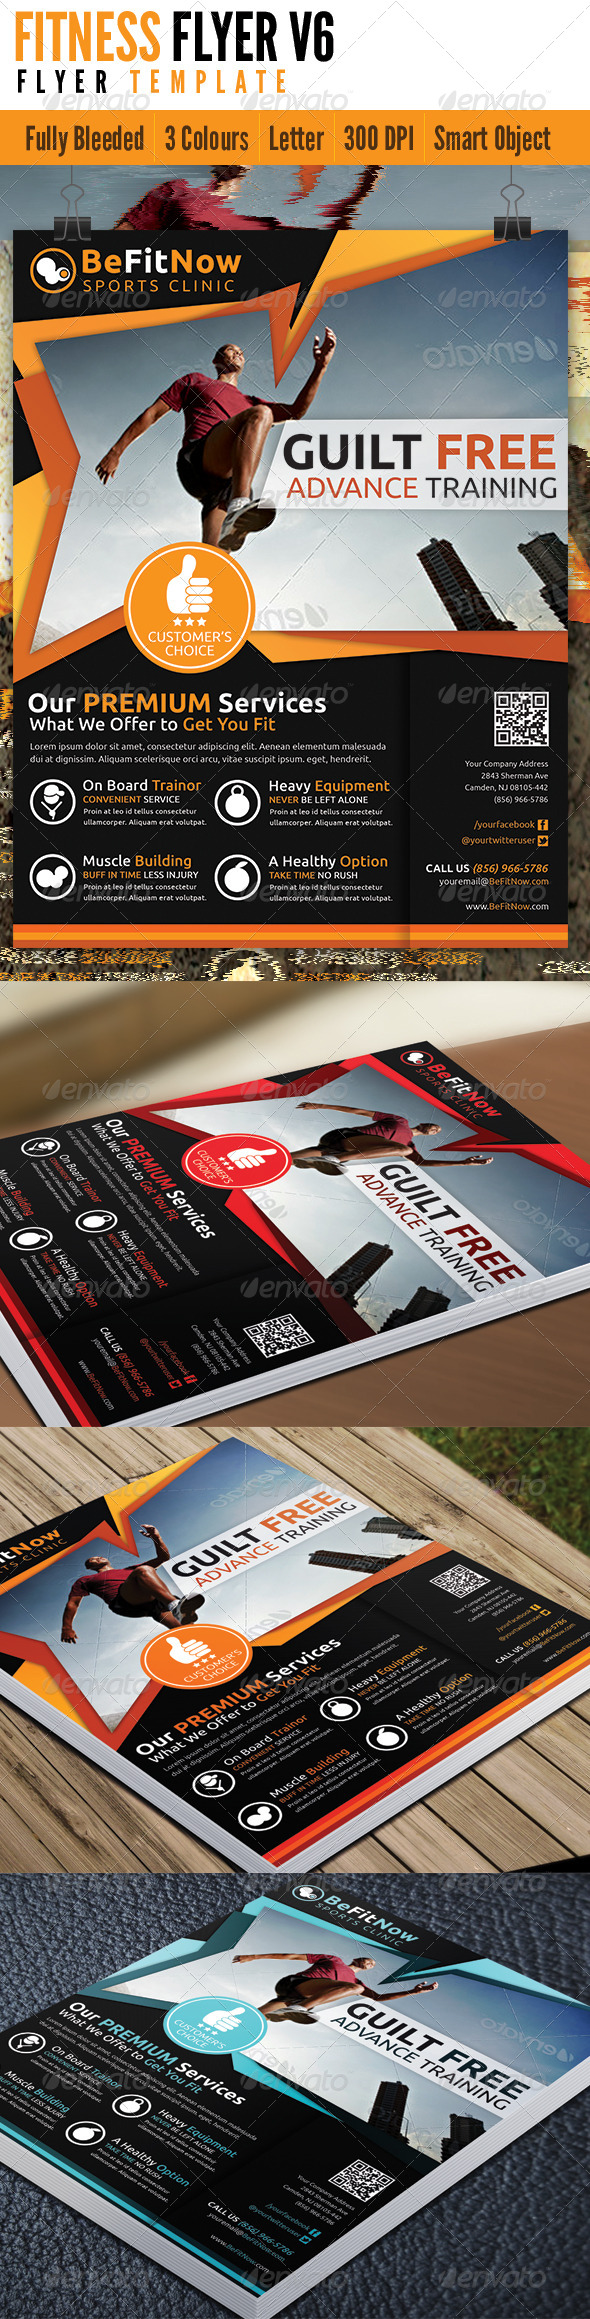 Fitness Flyer V6 - Flyers Print Templates